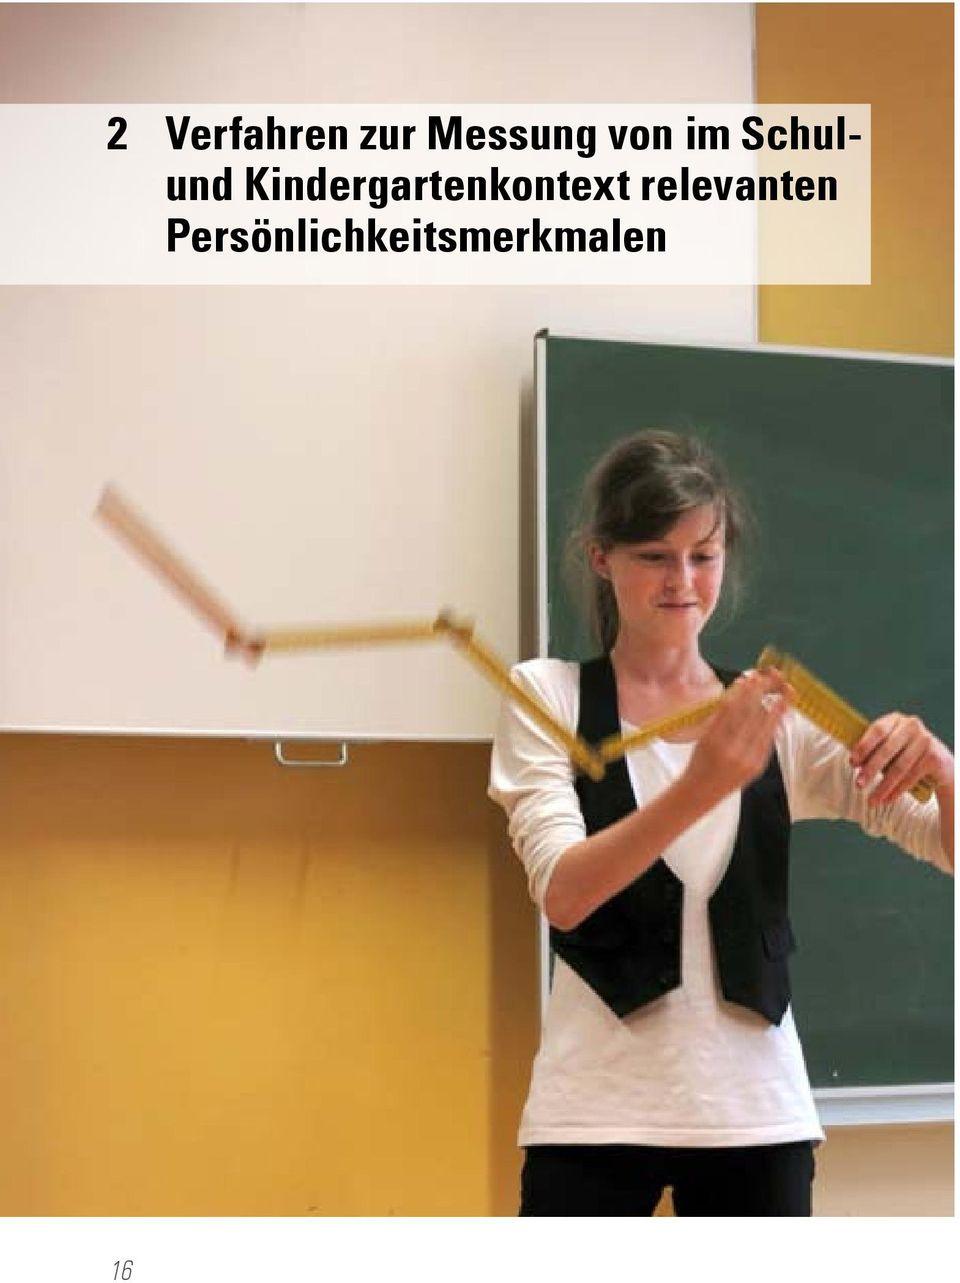 Kindergartenkontext